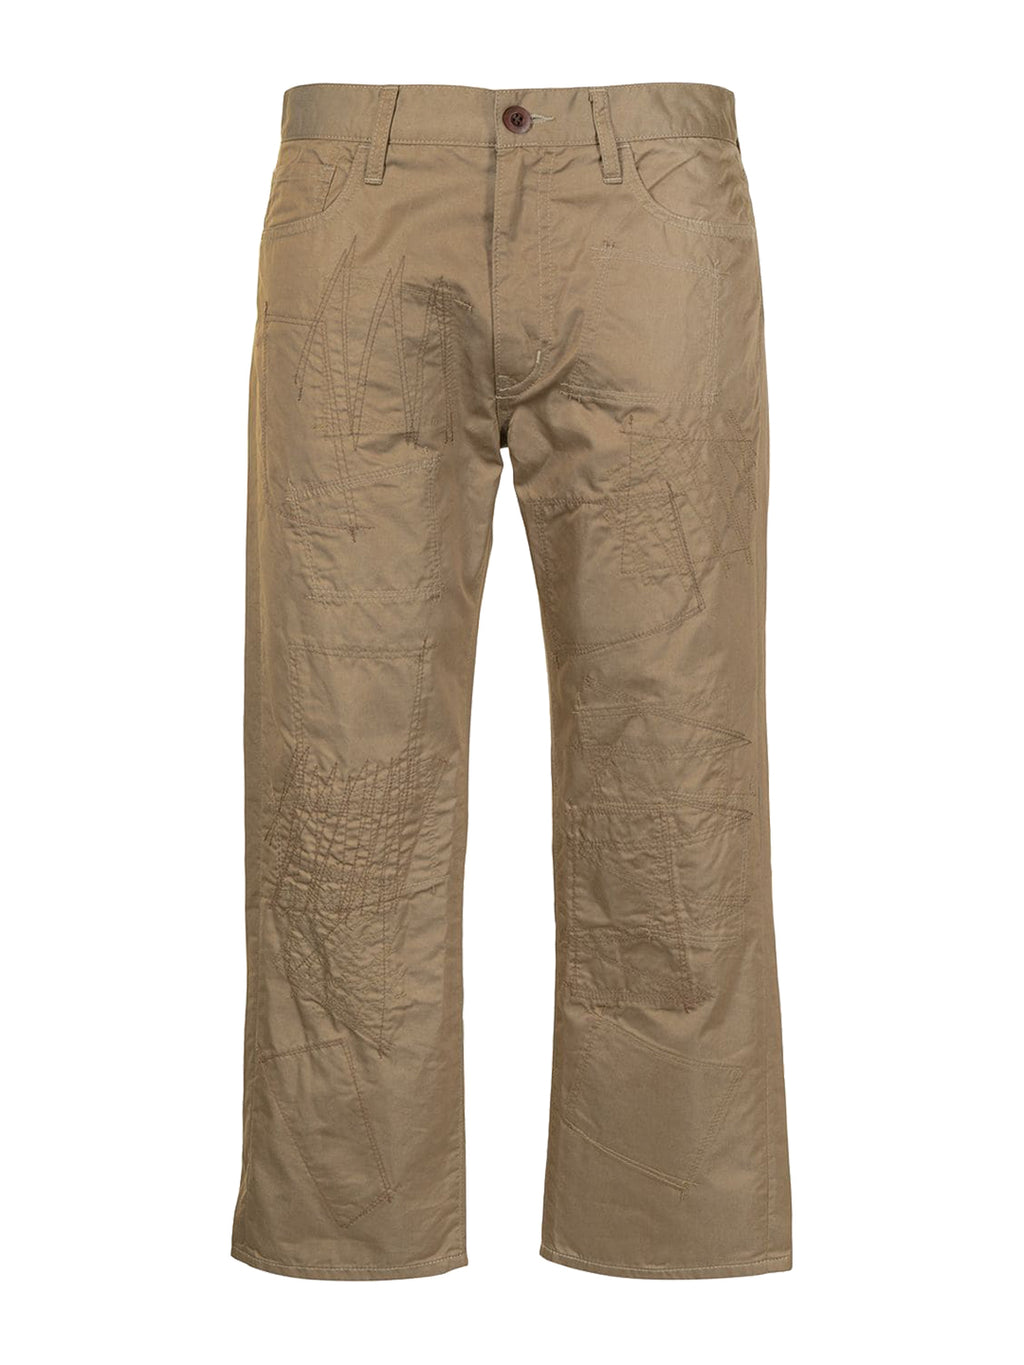 Khaki Reworked Pants